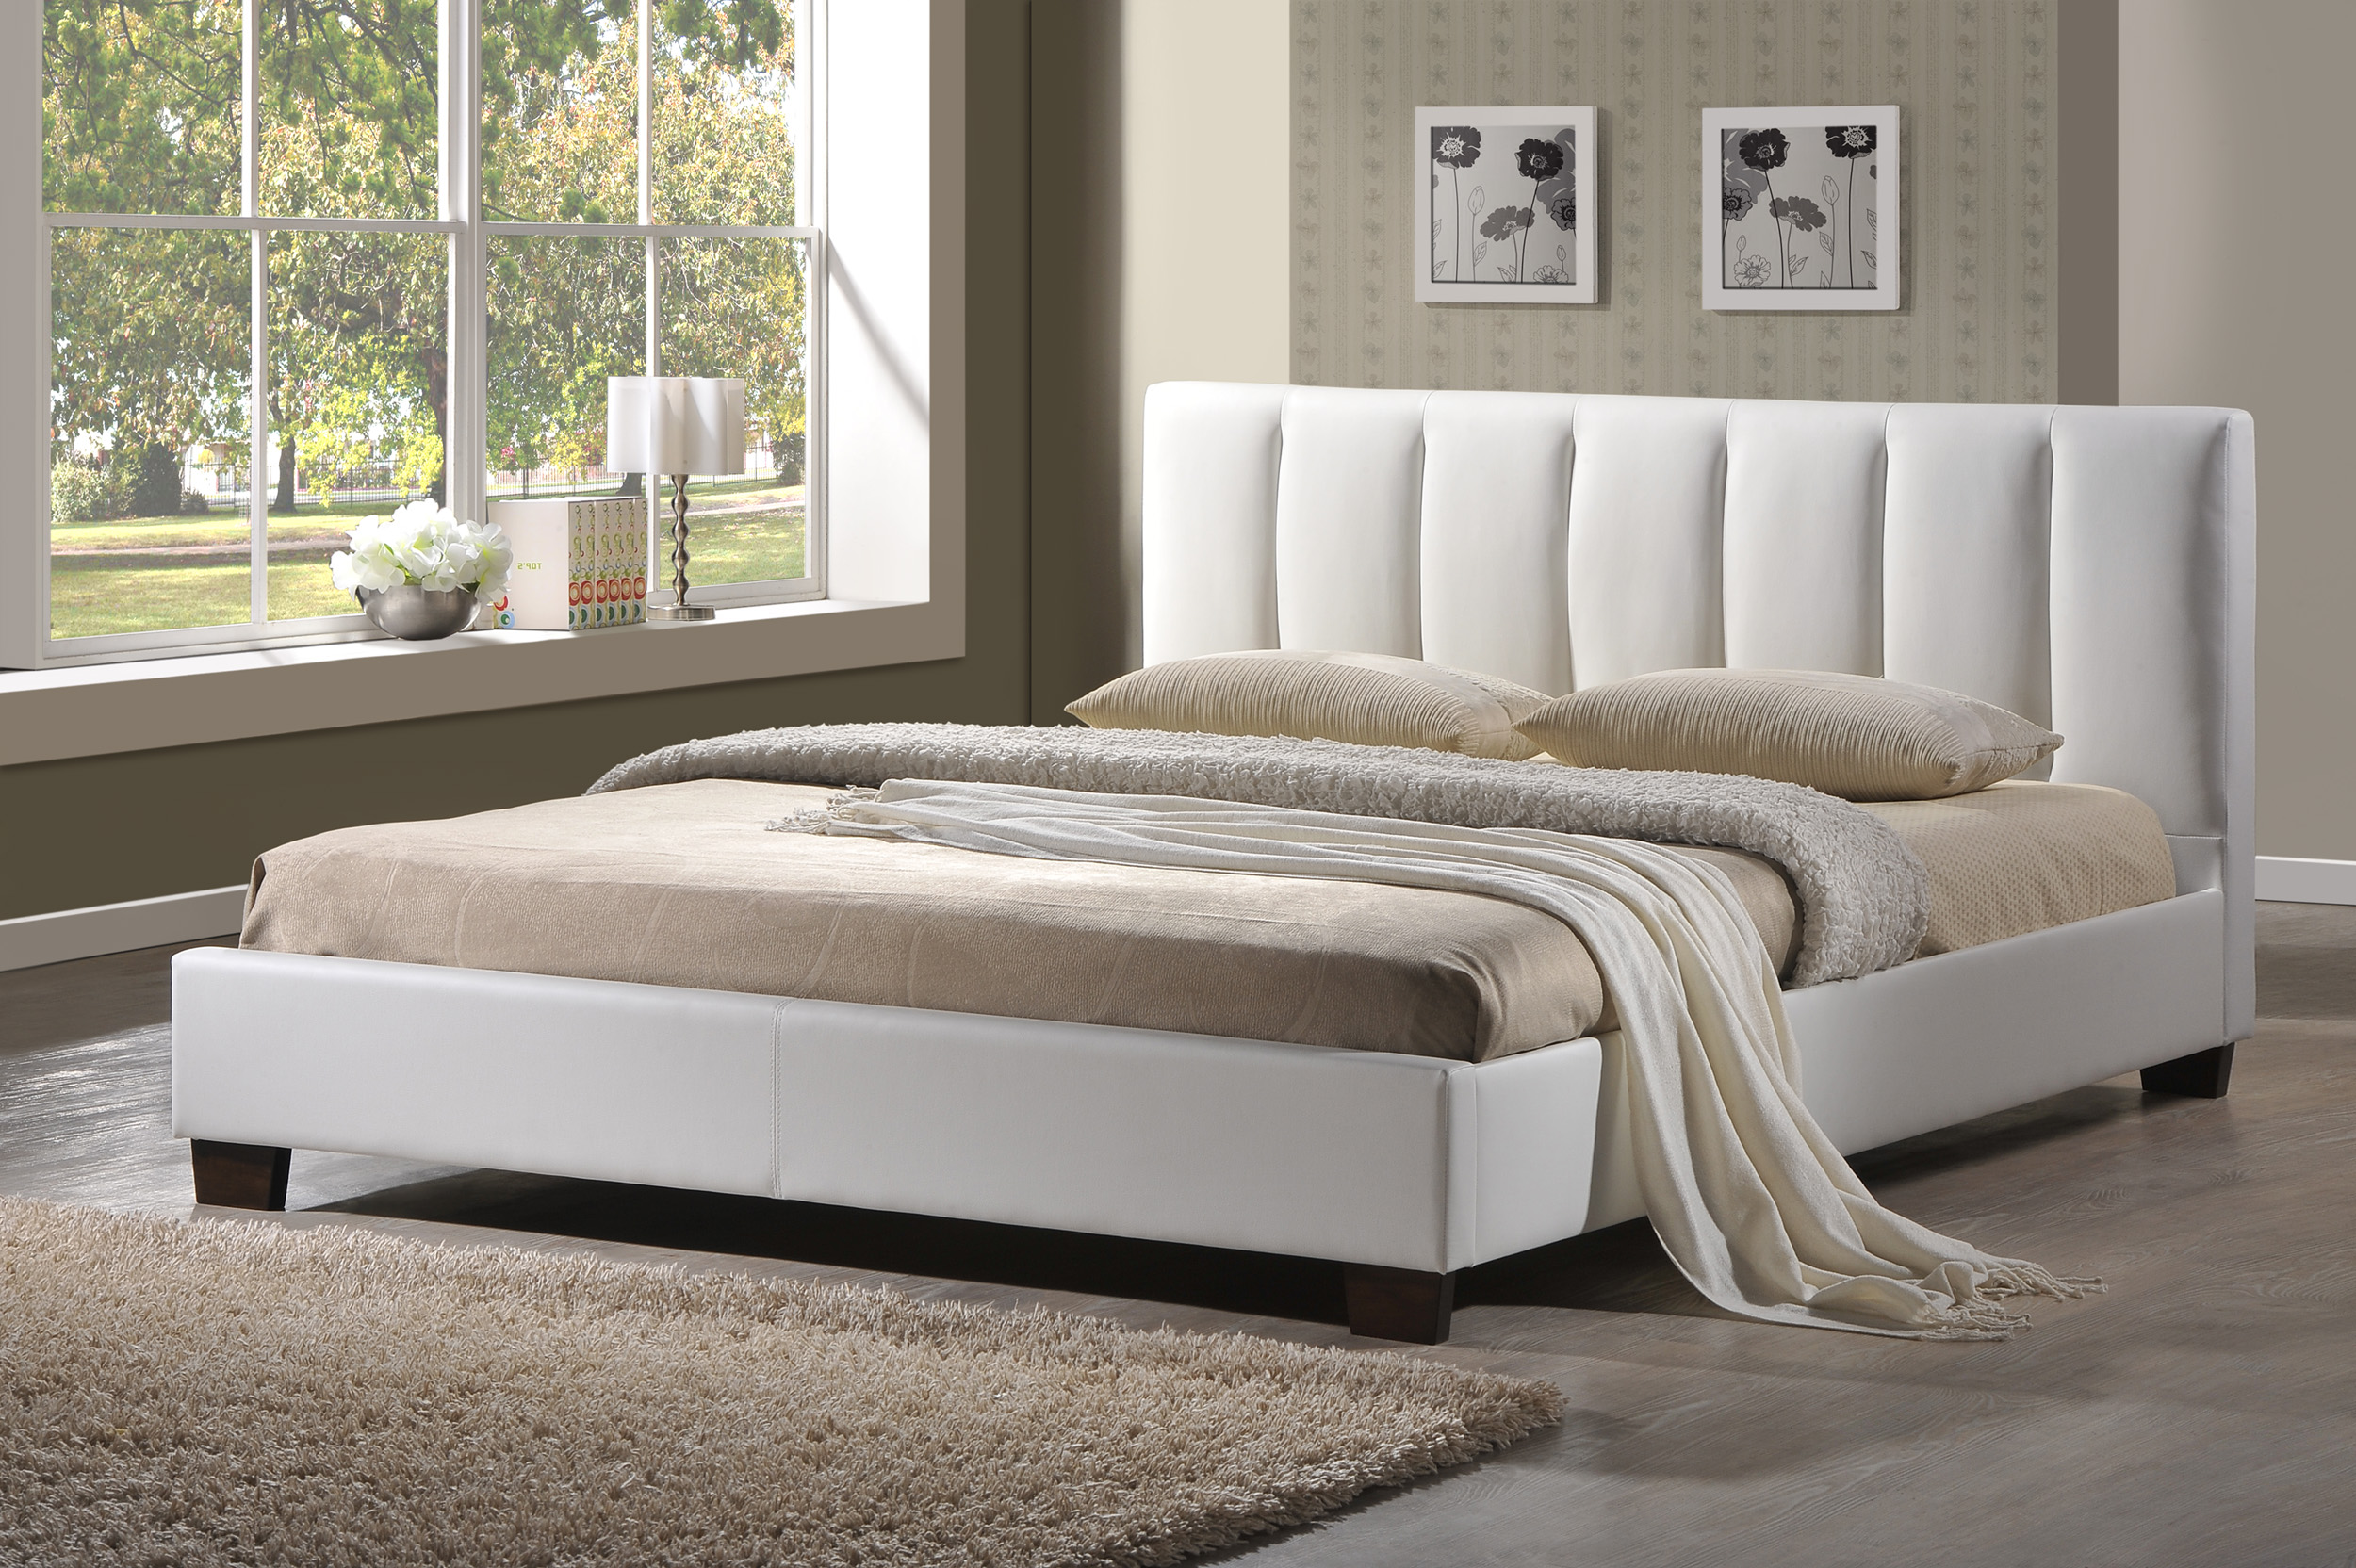 white design our bedroom dream rug w fur leather headboard on bed refreshing full frame sets to in ith fill black rectangle shape about